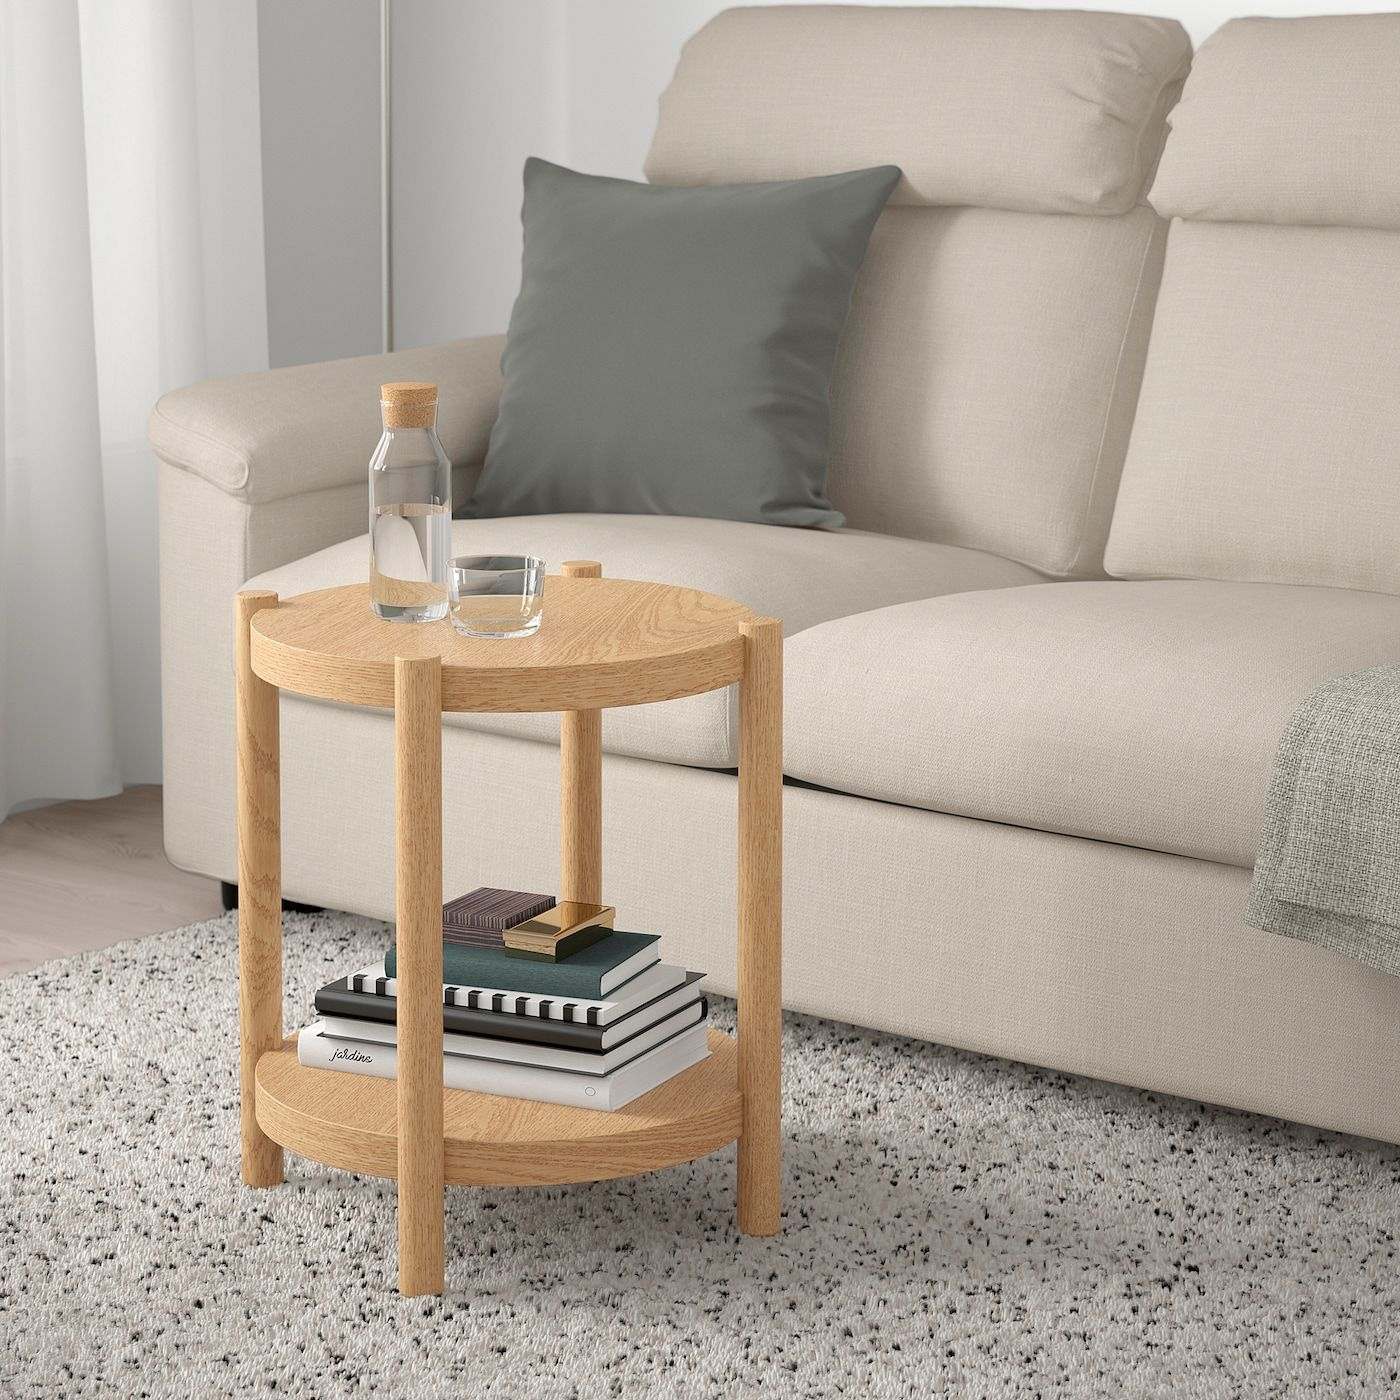 Listerby Coffee Table White Stained Oak 55 1 8x23 5 8 Ikea Ikea Coffee Table Coffee Table Oak Coffee Table [ 1400 x 1400 Pixel ]